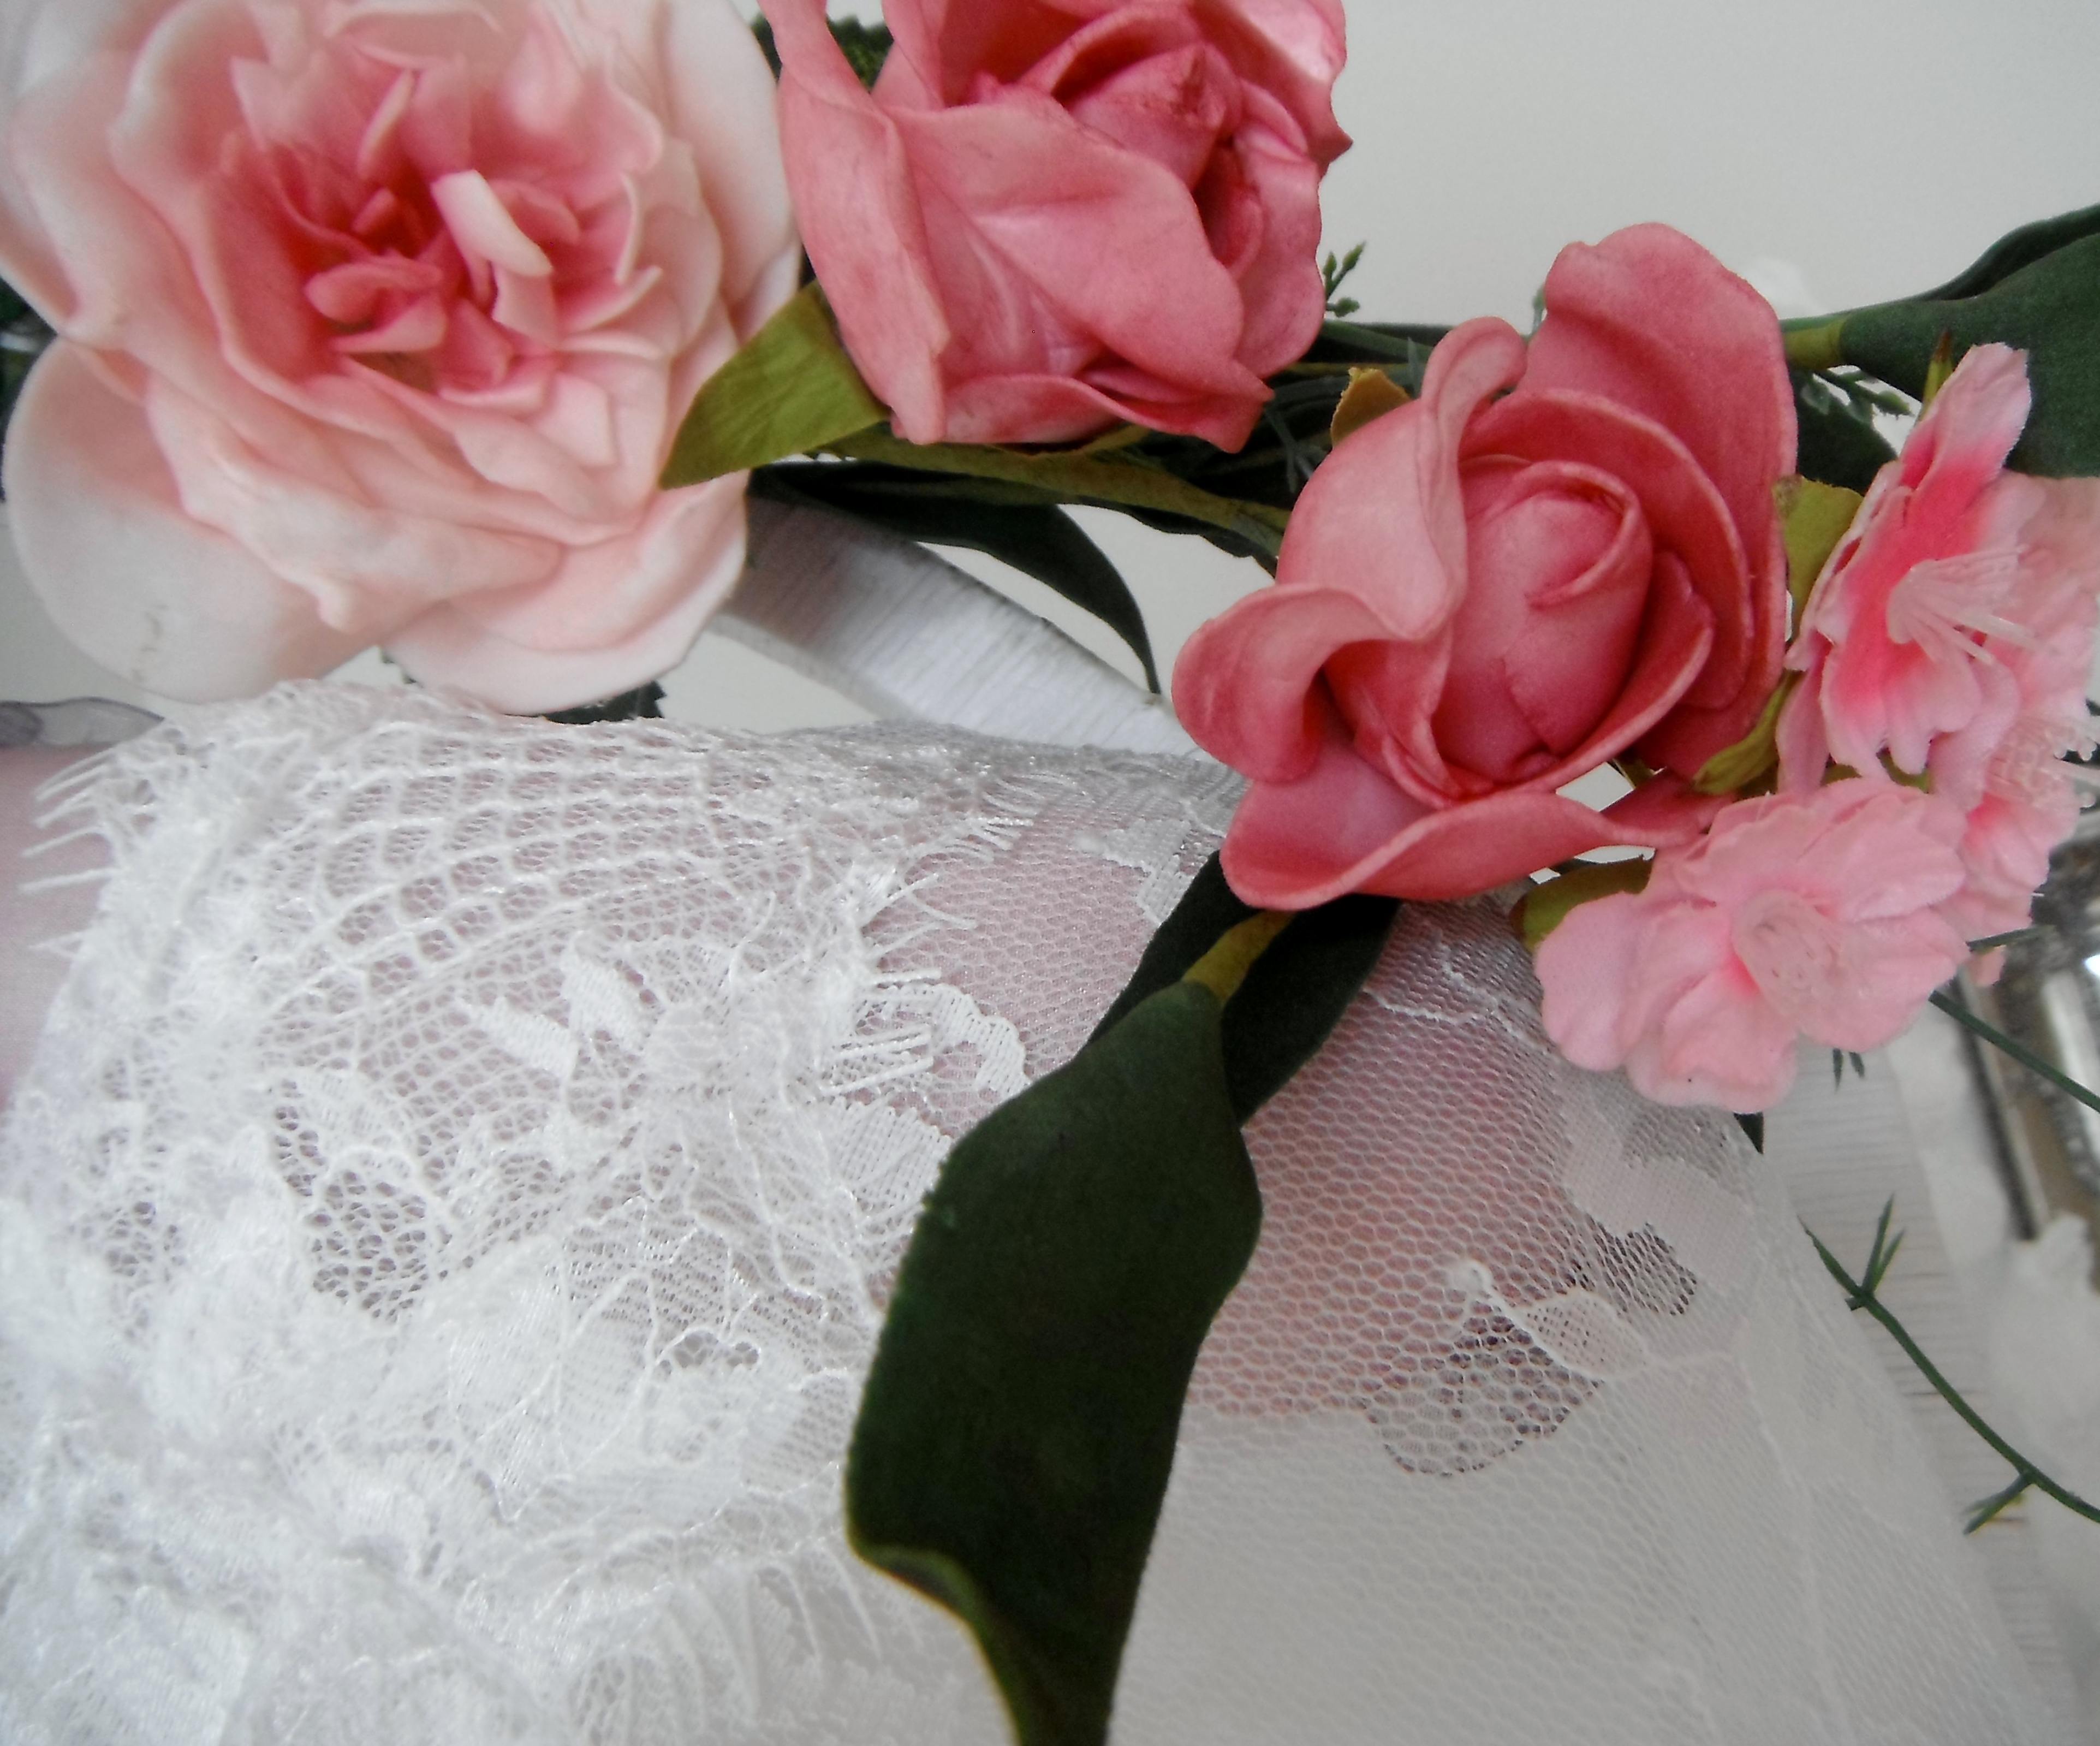 We Sell Wedding Dresses Made Of Lace Chiffon And Silk Are Situated In